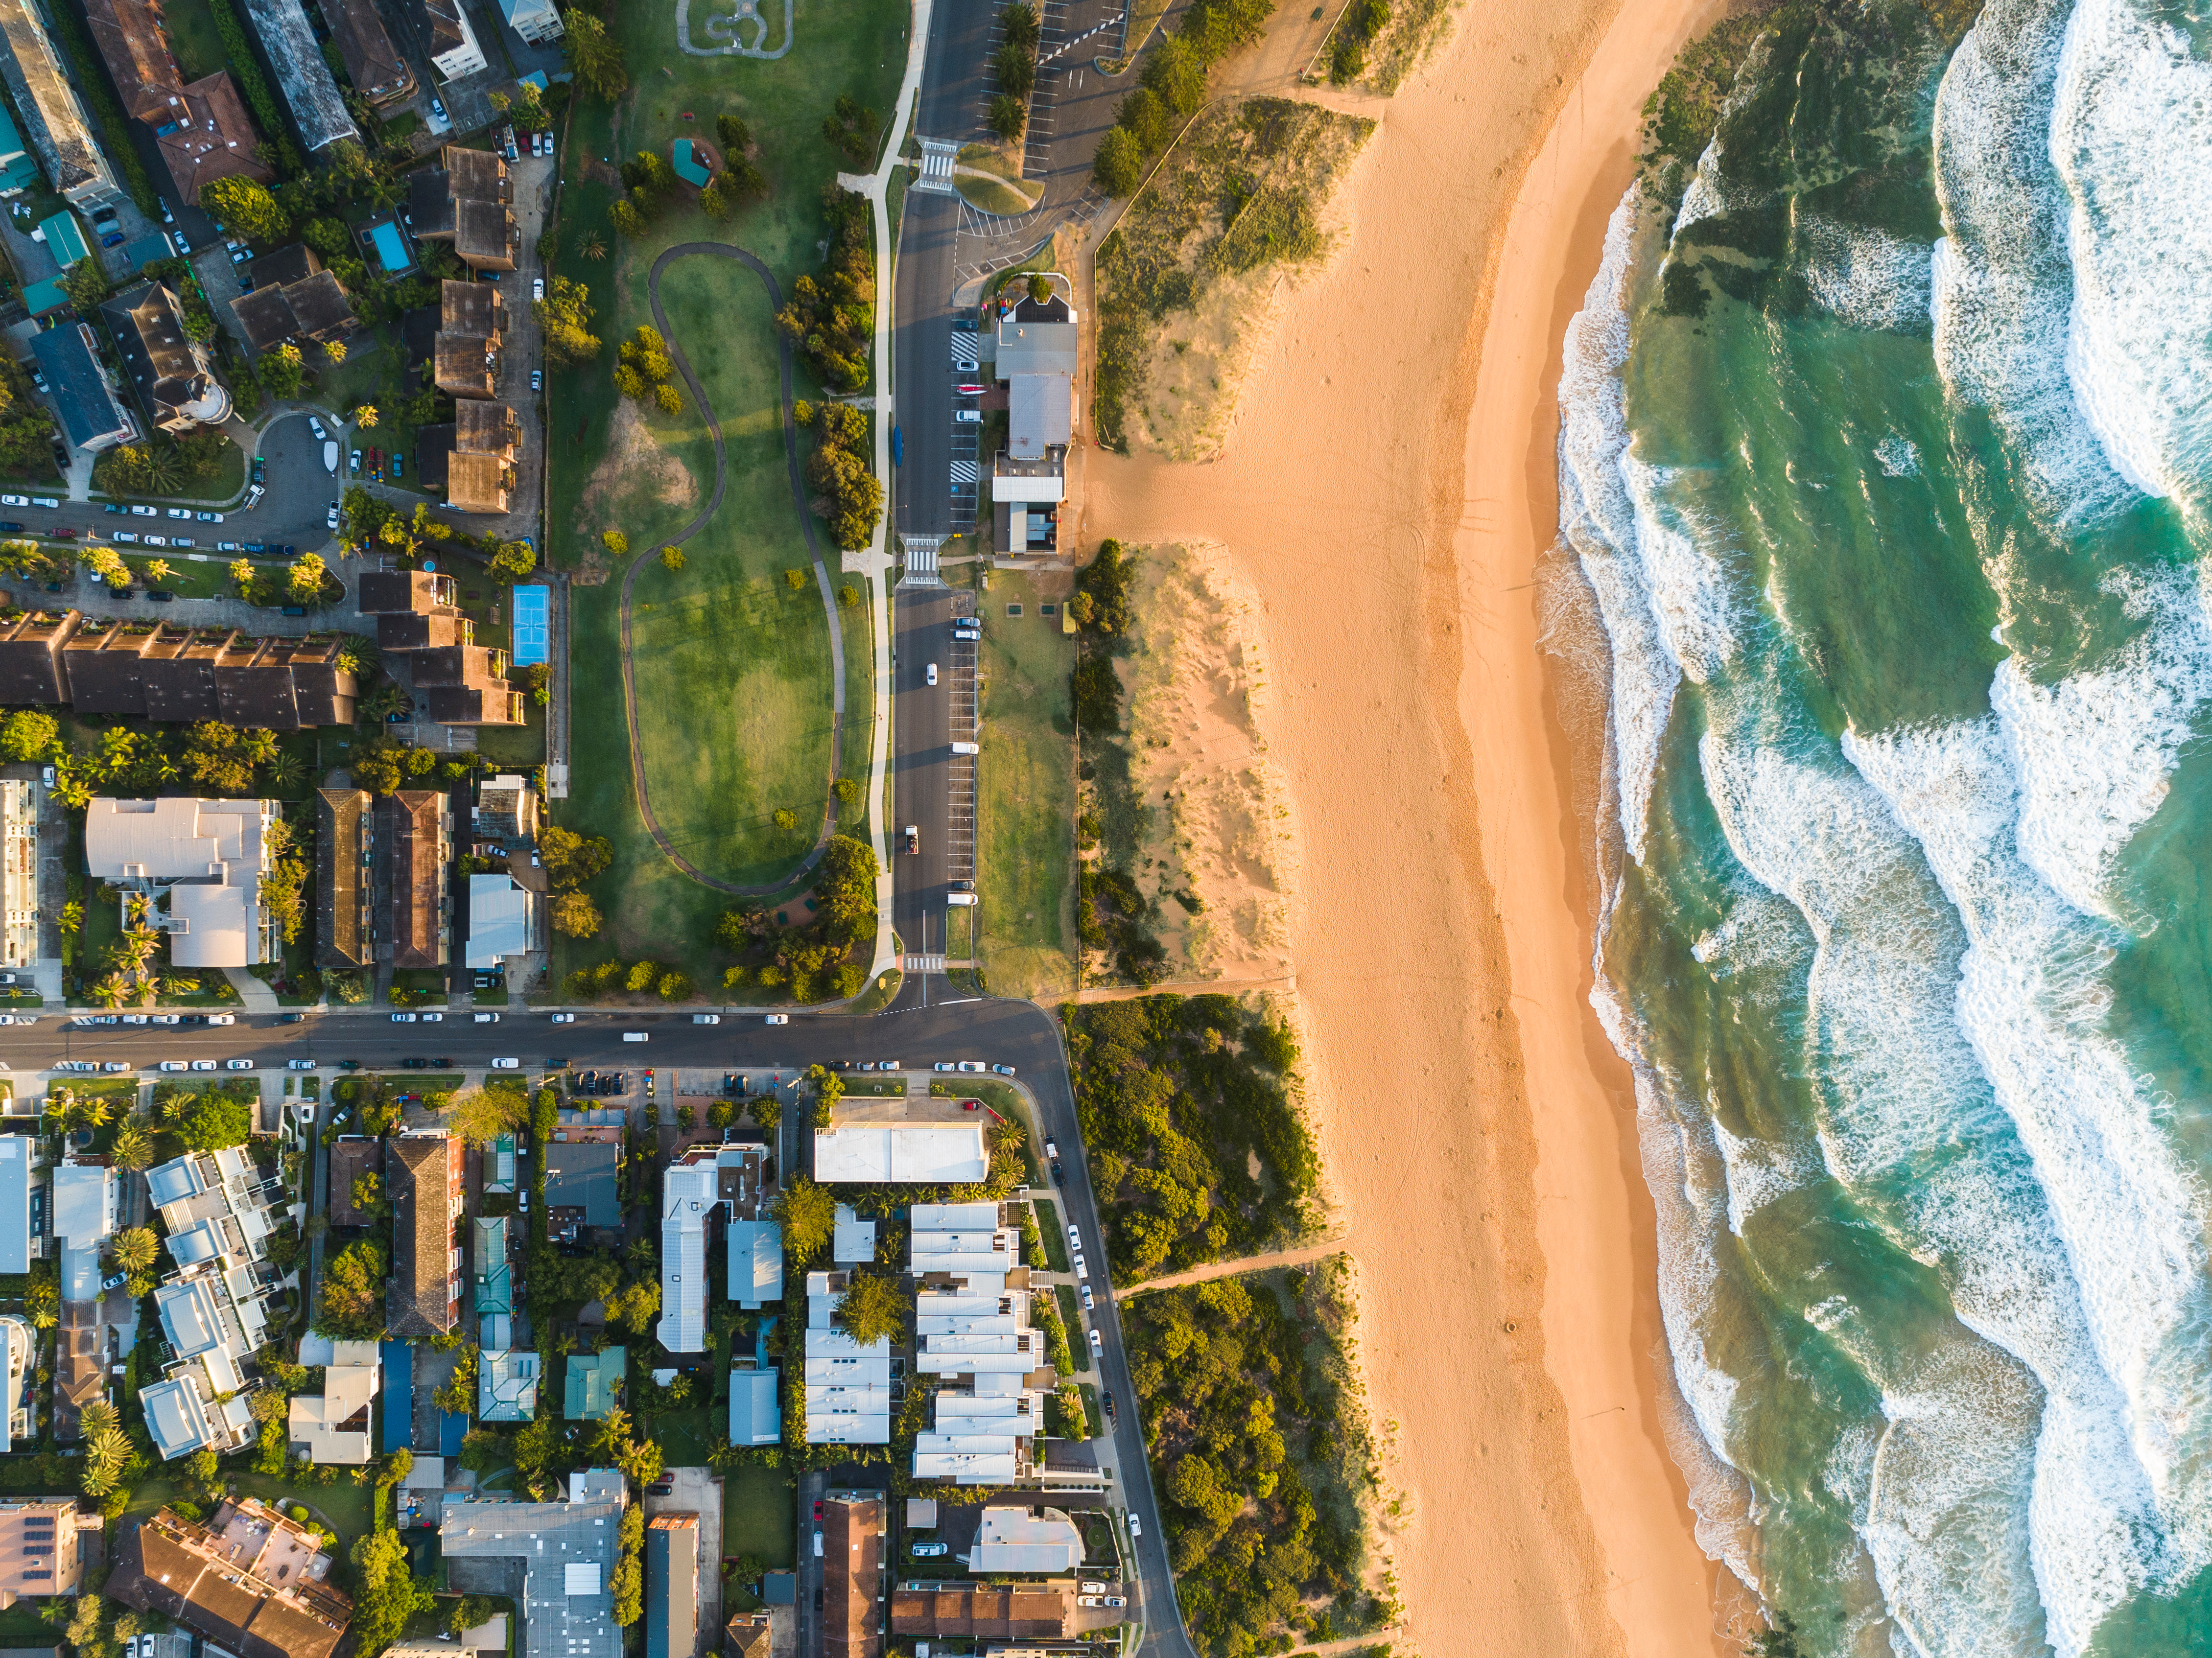 Aerial view of houses in Sydney